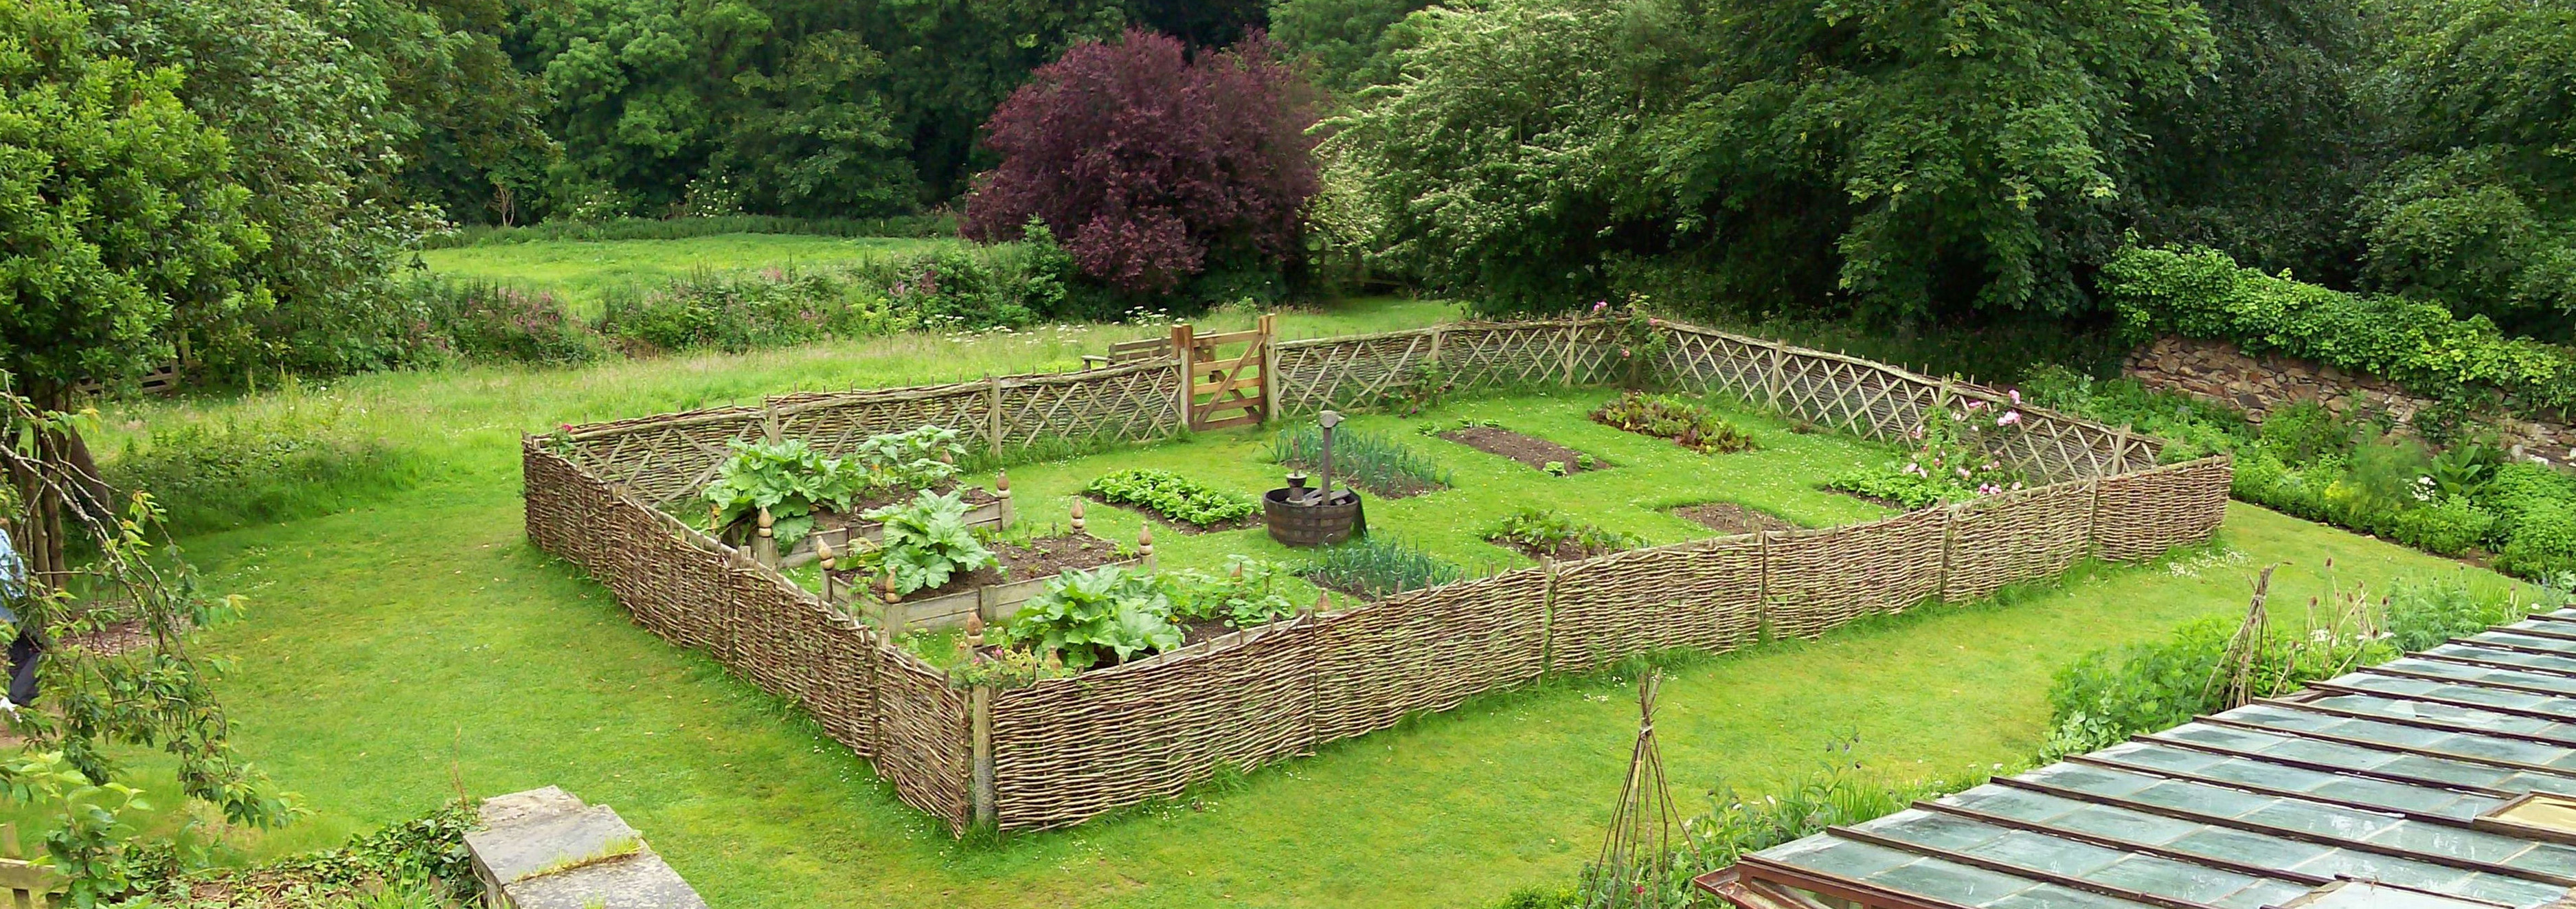 Protective fencing can be ornamental.